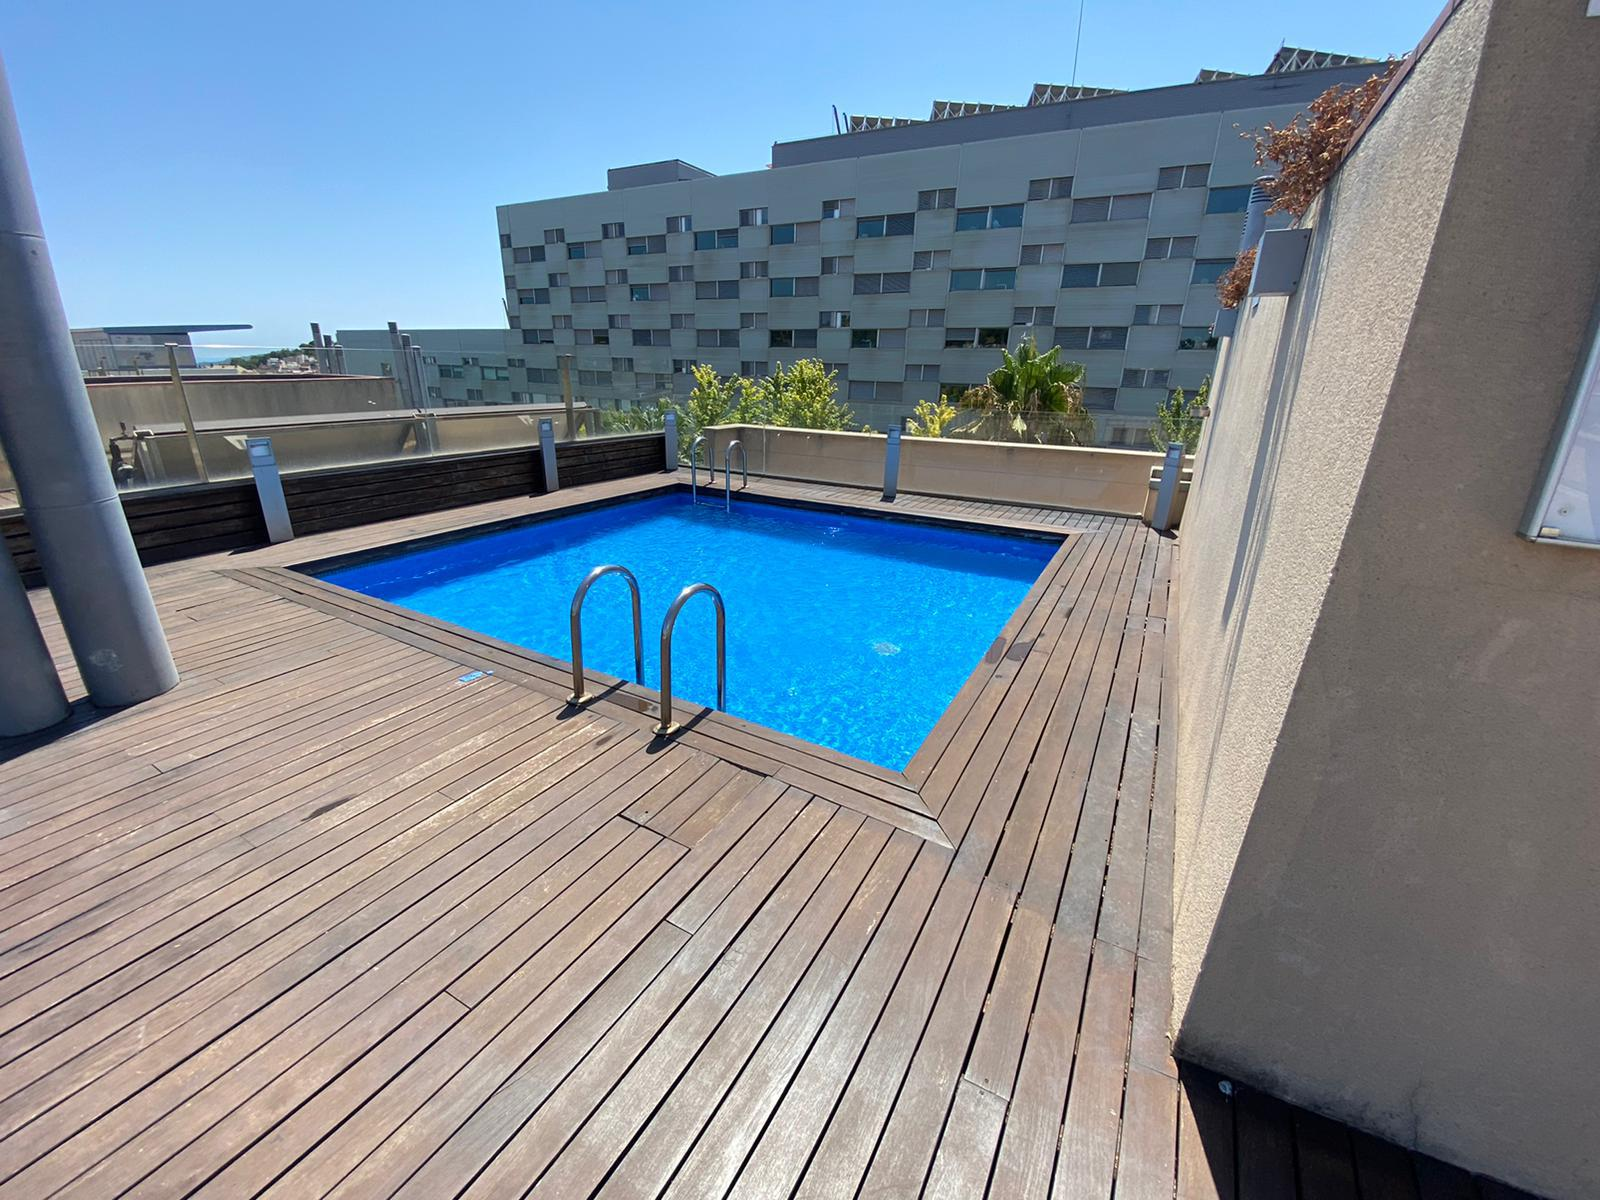 246682 Flat for sale in Gràcia, Vallcarca and Els Penitents 2